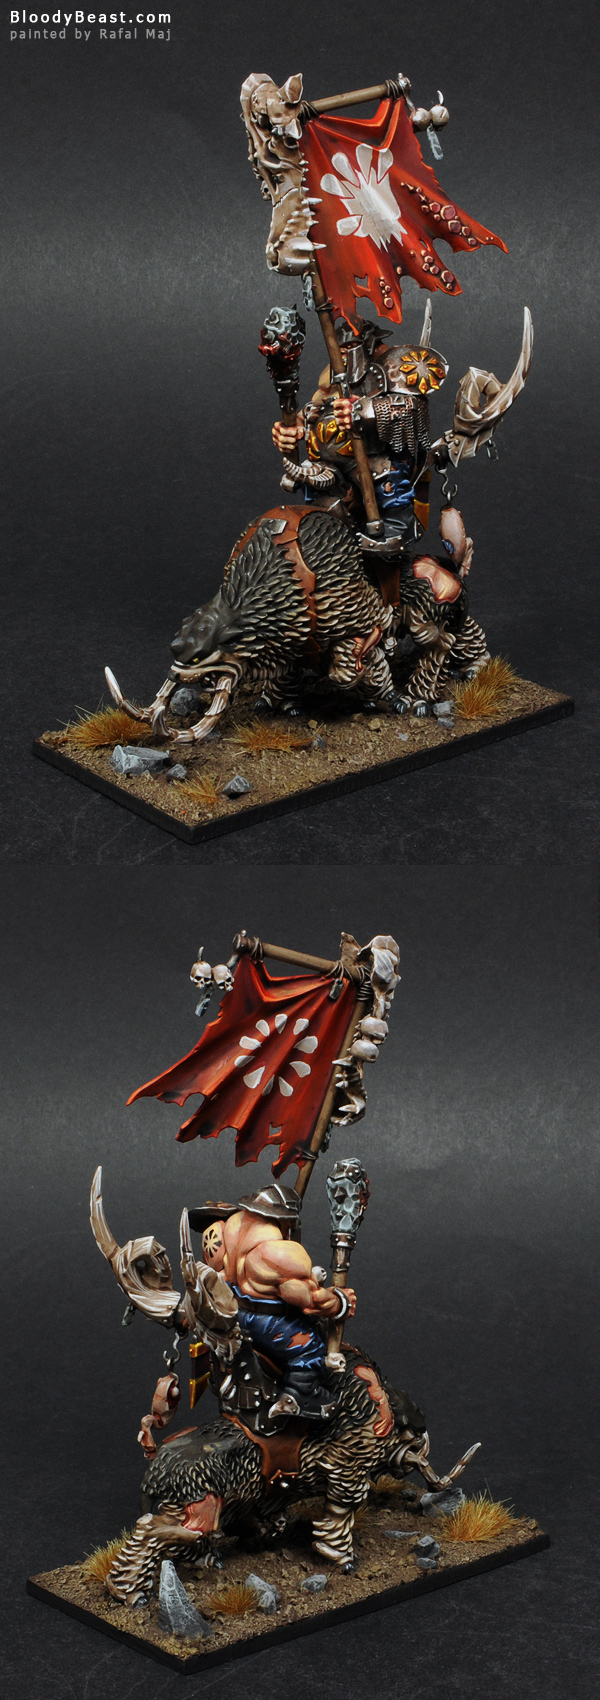 Ogre Mournfang Cavalry Standard painted by Rafal Maj (BloodyBeast.com)